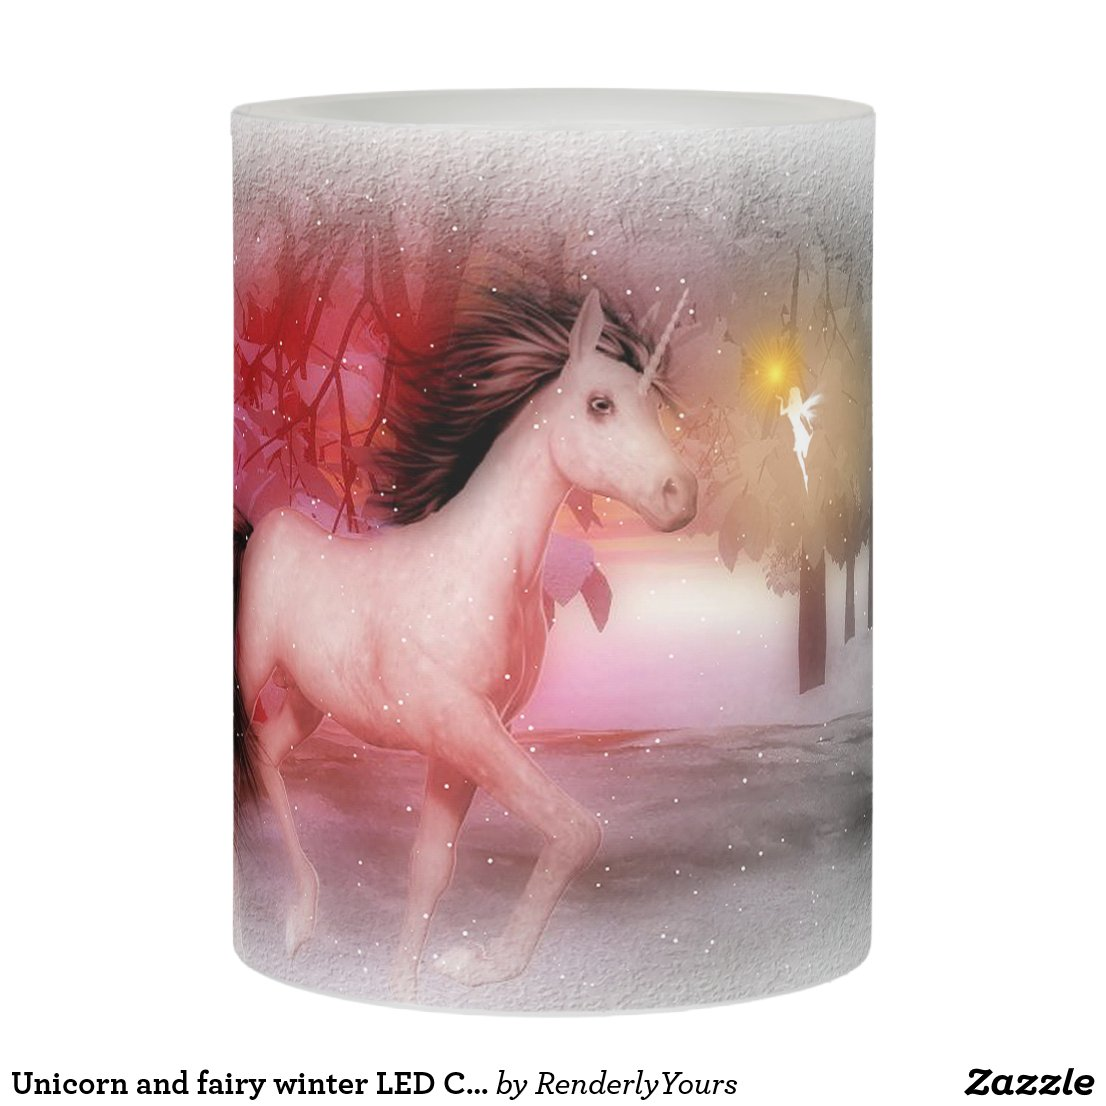 Unicorn and fairy winter LED Candle